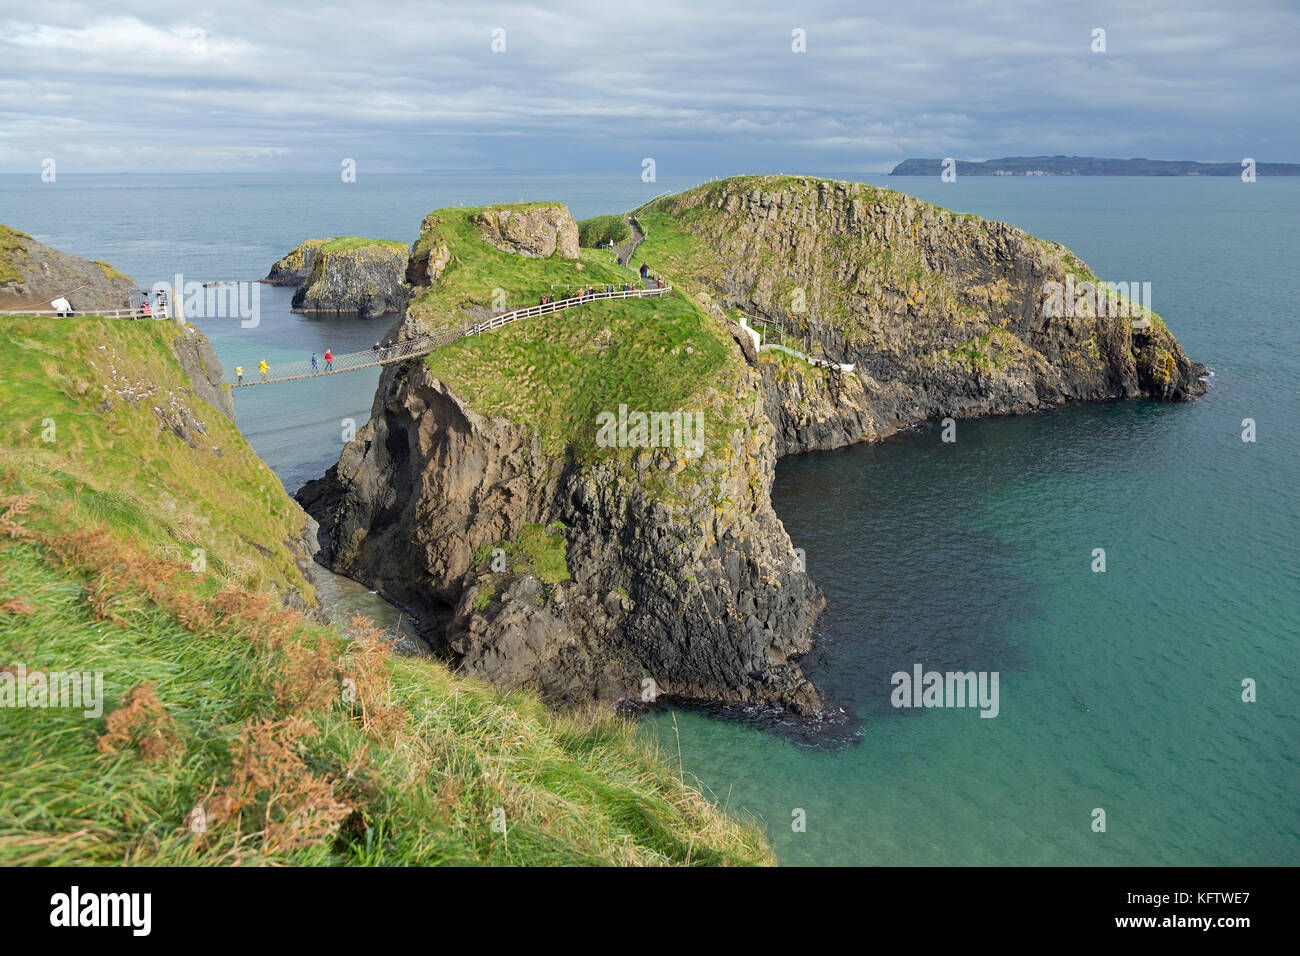 Carrick-a-Rede Rope Bridge, Ballintoy, Co. Antrim, Northern Ireland Stock Photo